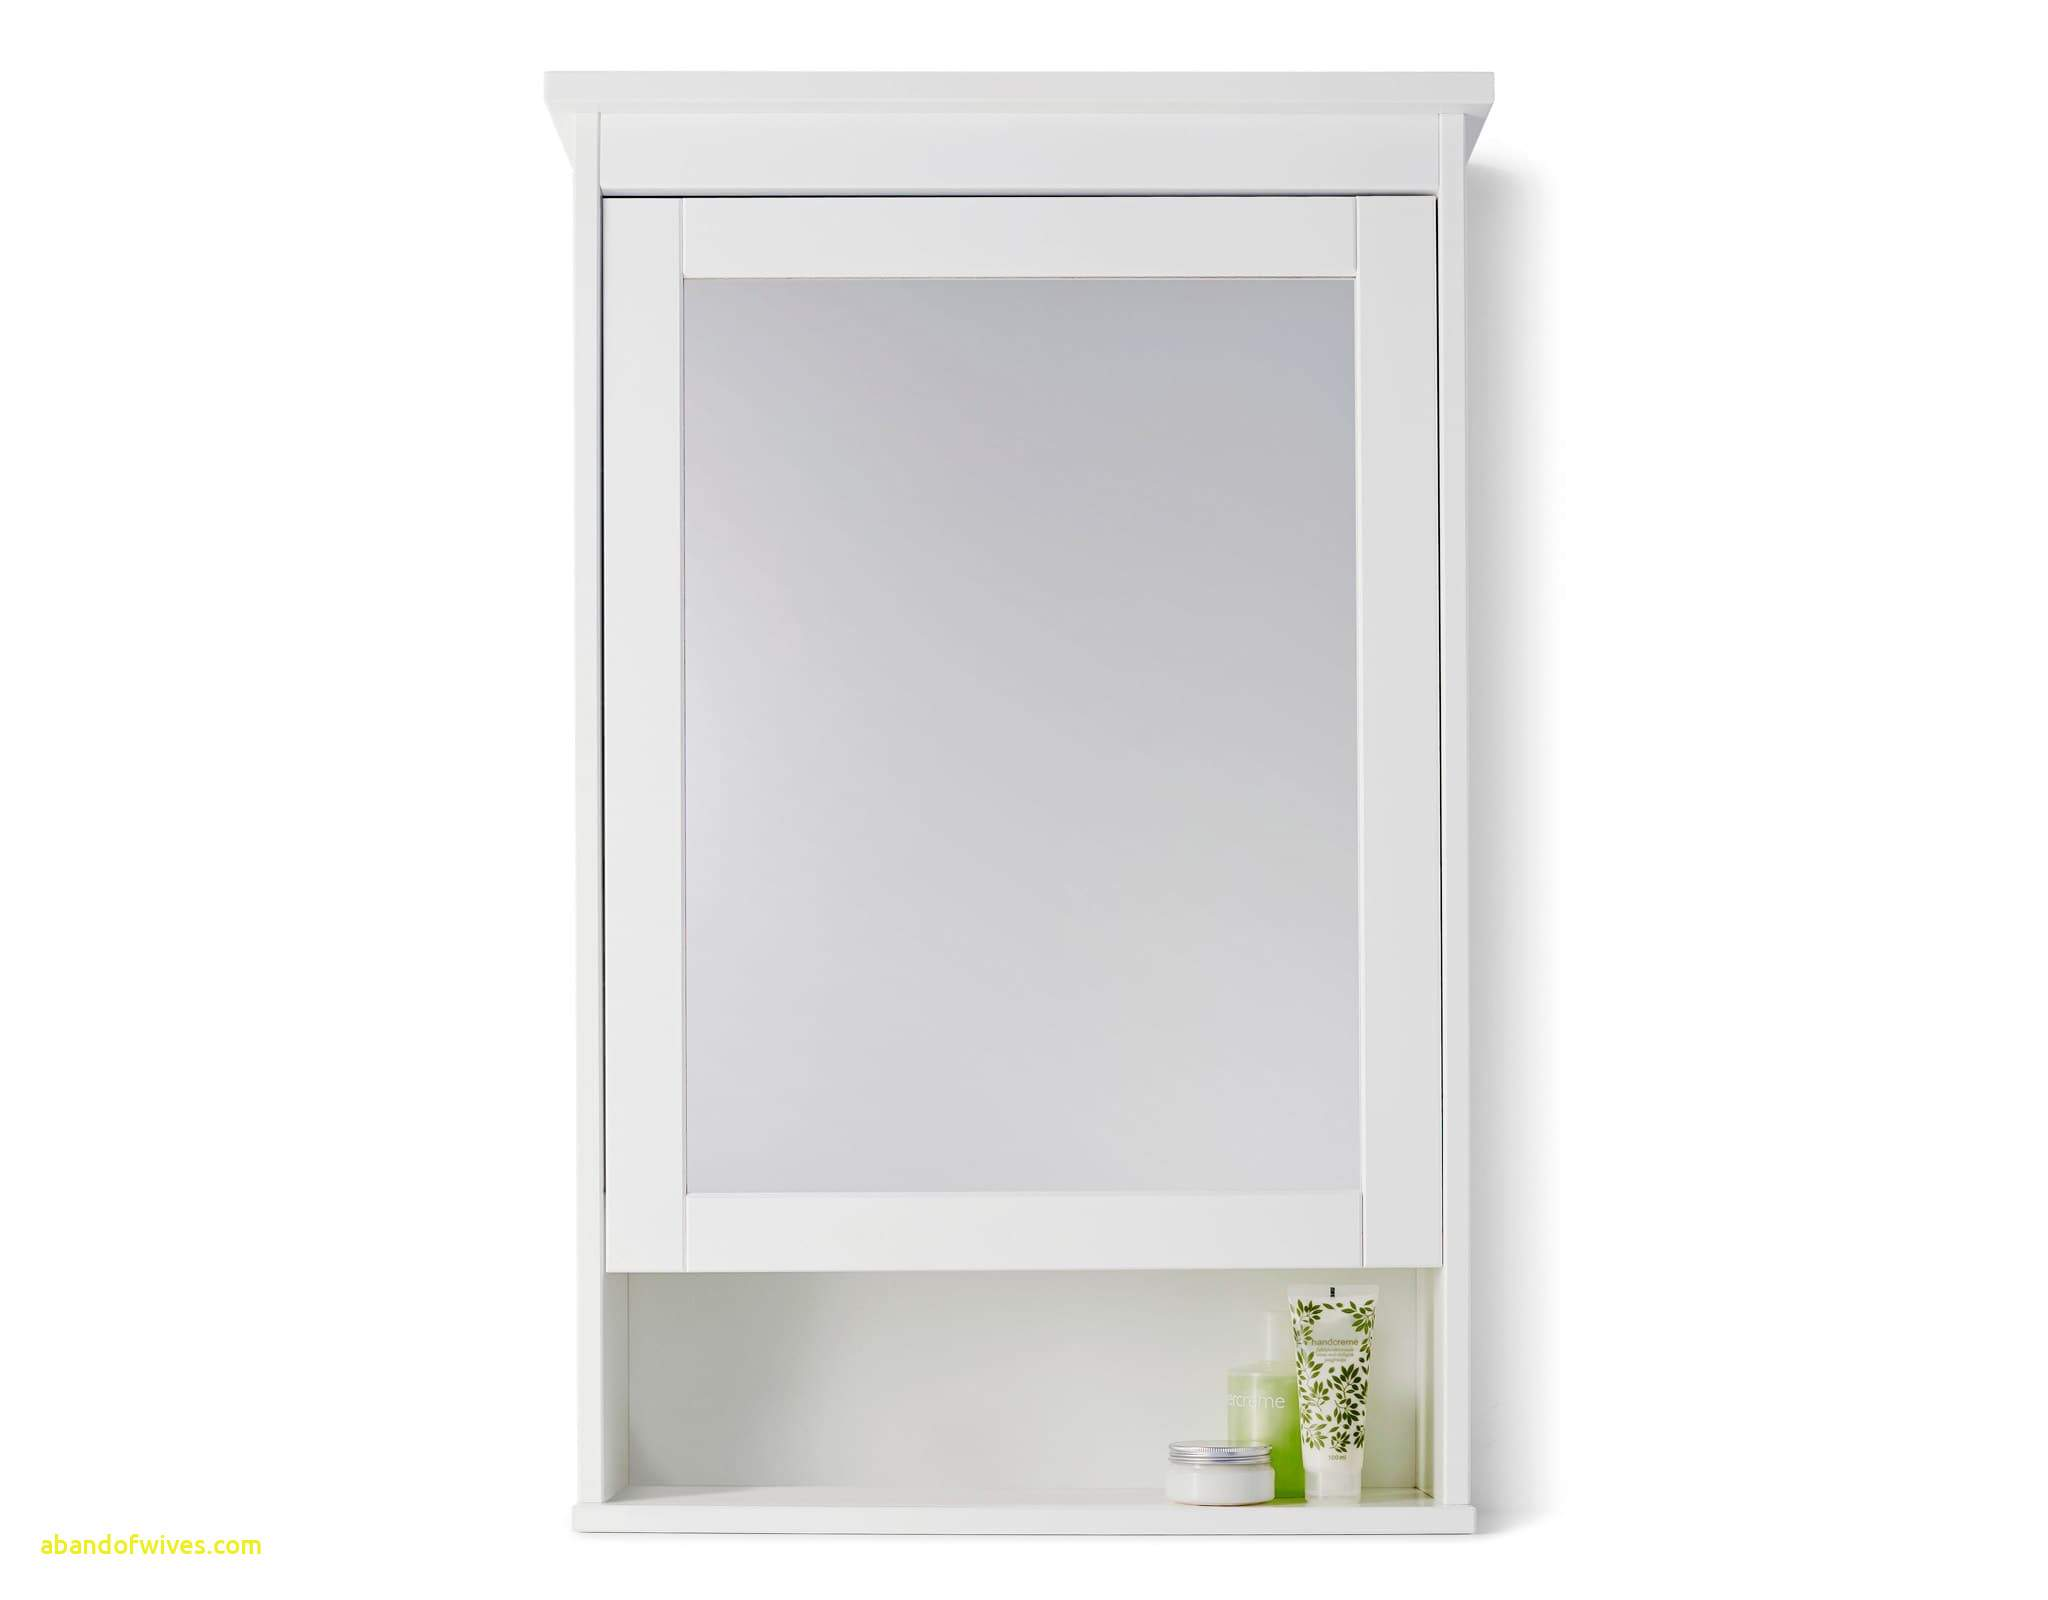 ikea hemnes bathroom cabinet lovely slim bathroom vanity bathroom mirror designs french bathroom of ikea hemnes bathroom cabinet